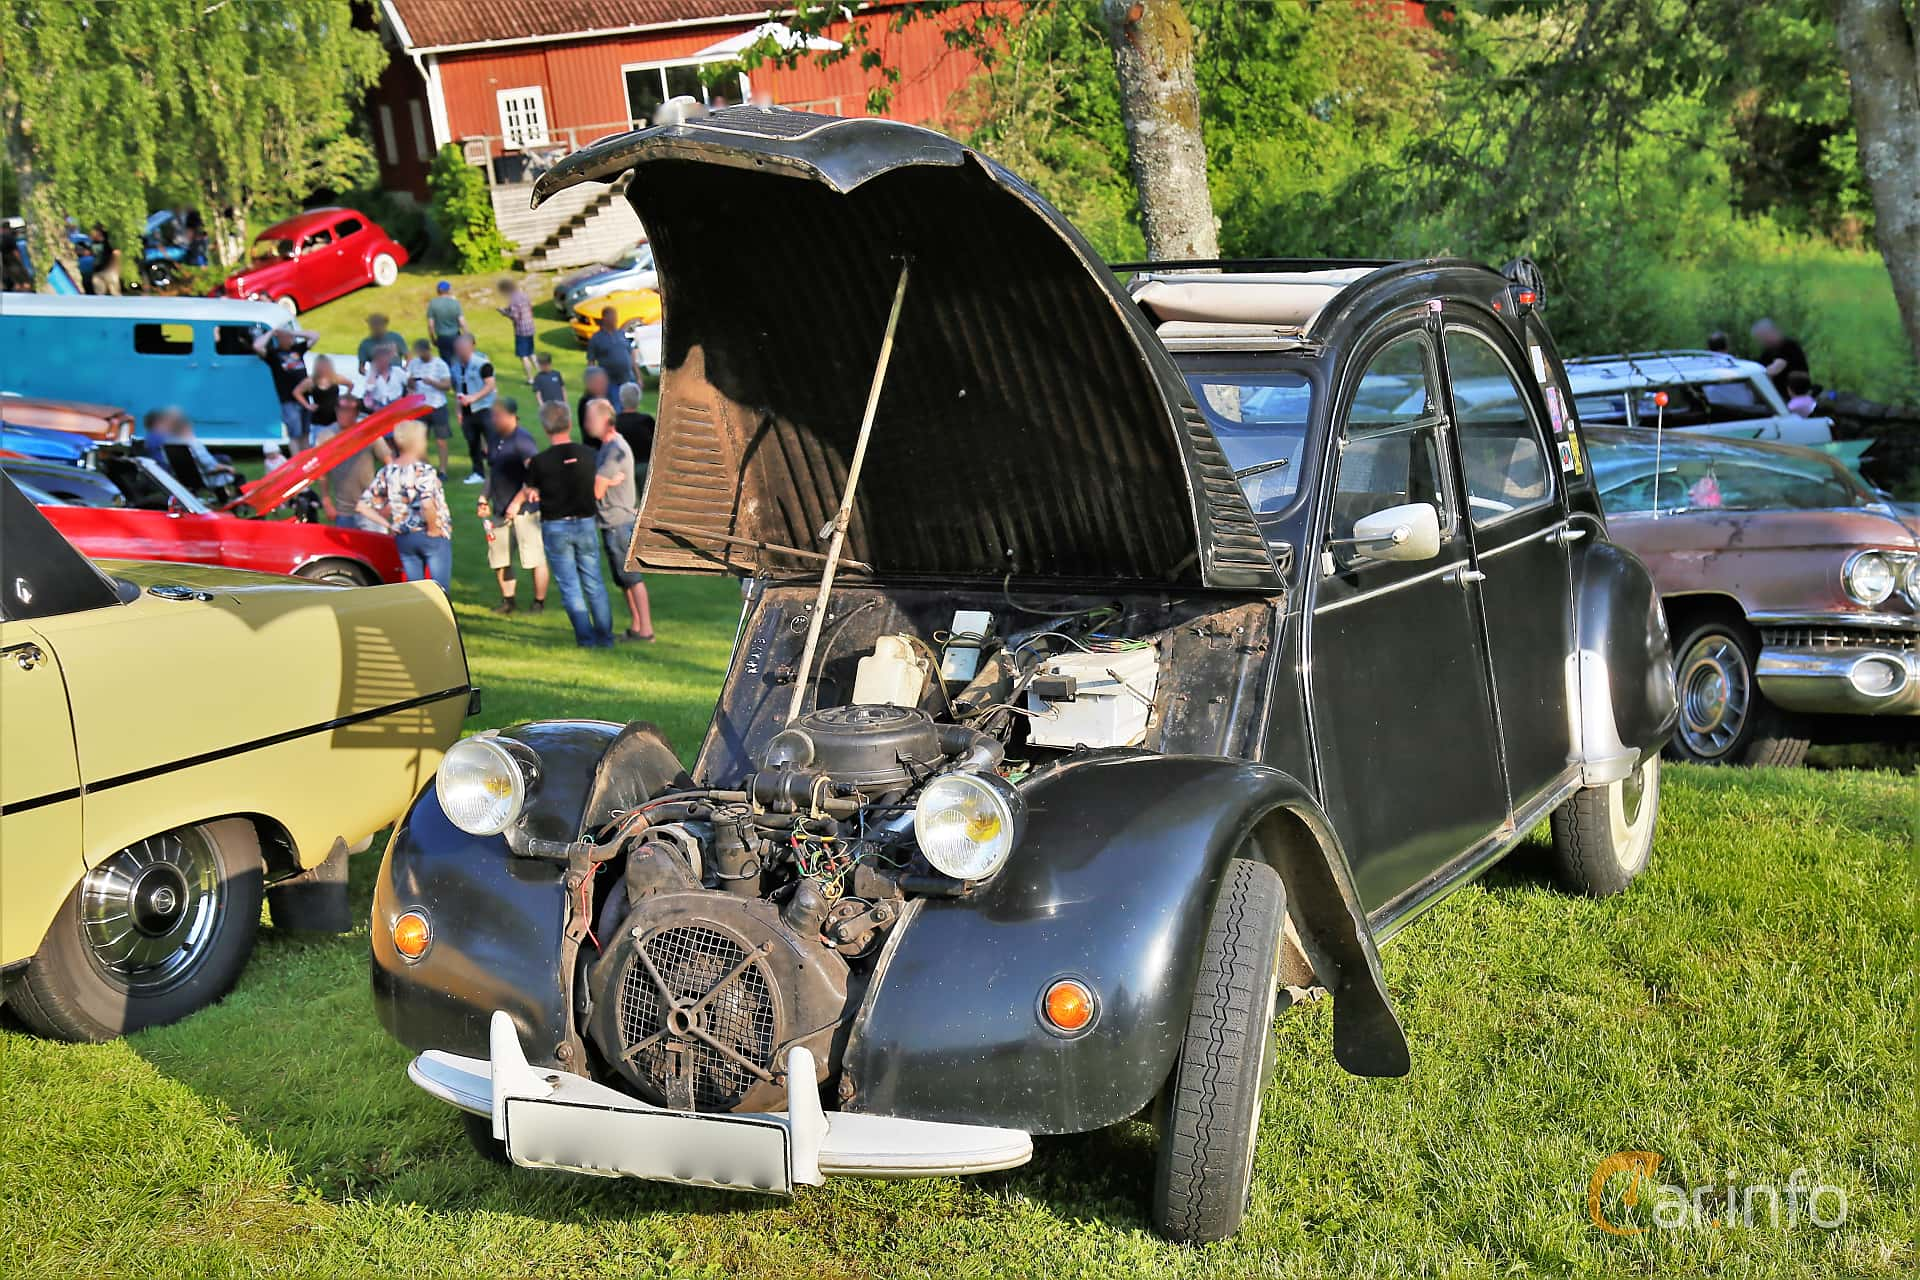 Citroën 2CV 0.6 Manual, 22hp, 1967 at GMHK Bilträff hos Mellanders 2019